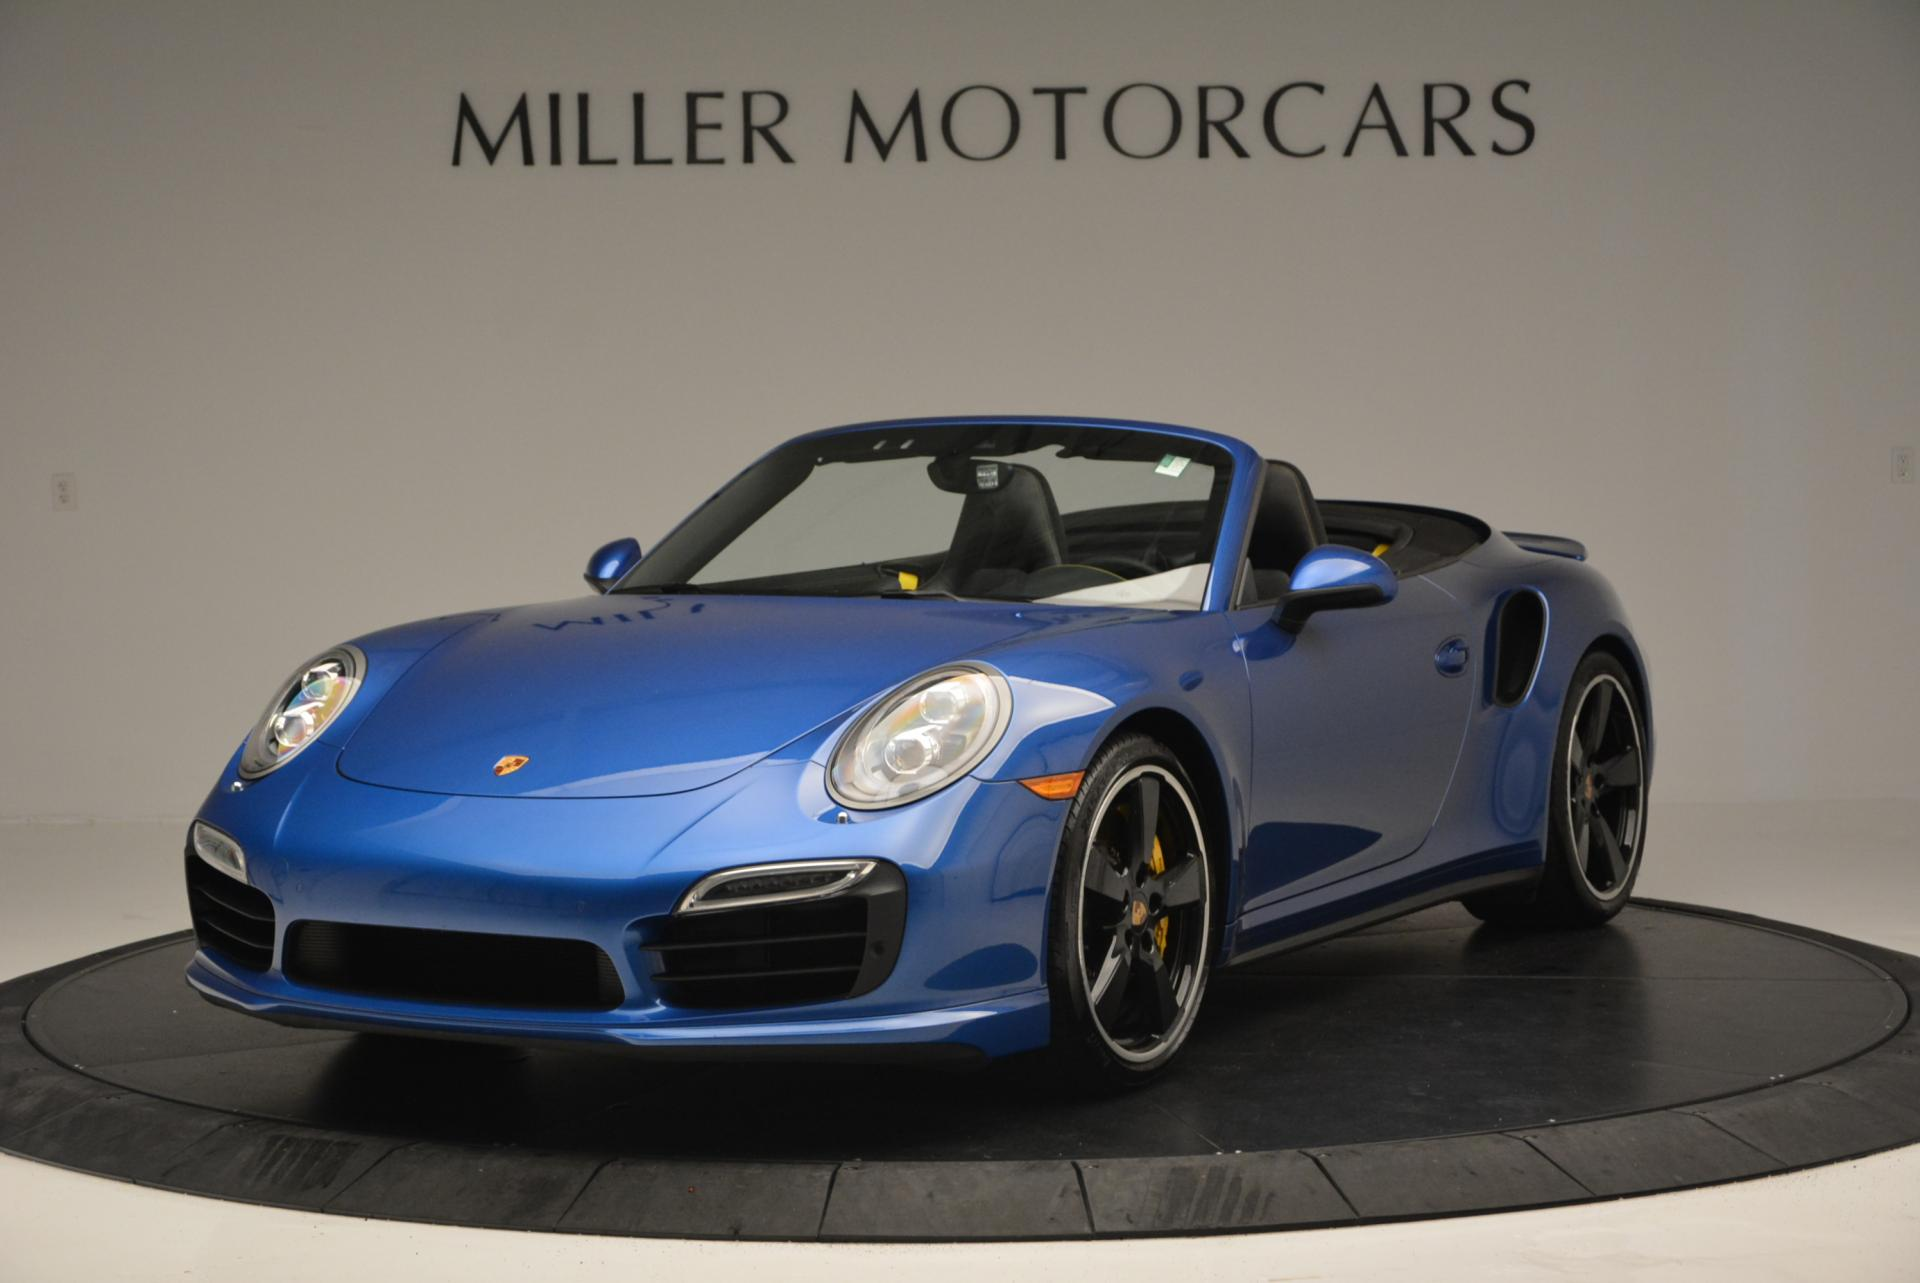 Used 2014 Porsche 911 Turbo S for sale Sold at Bentley Greenwich in Greenwich CT 06830 1